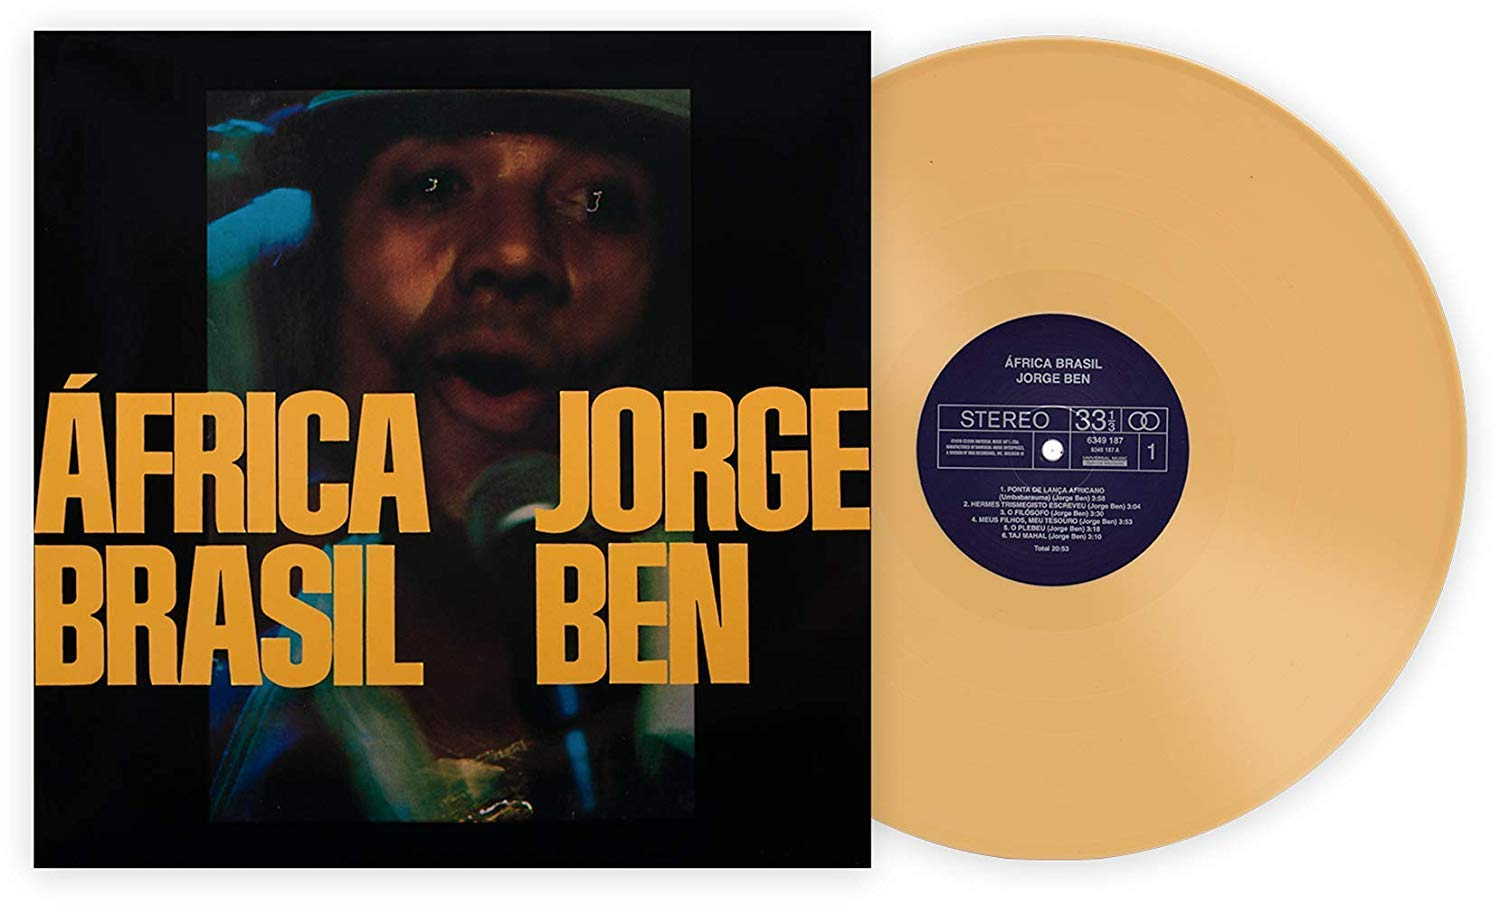 África Brasil - Exclusive Club Edition Yellow 180 Gram Vinyl LP [Condition-VG+NM] by Universal Music Special Markets